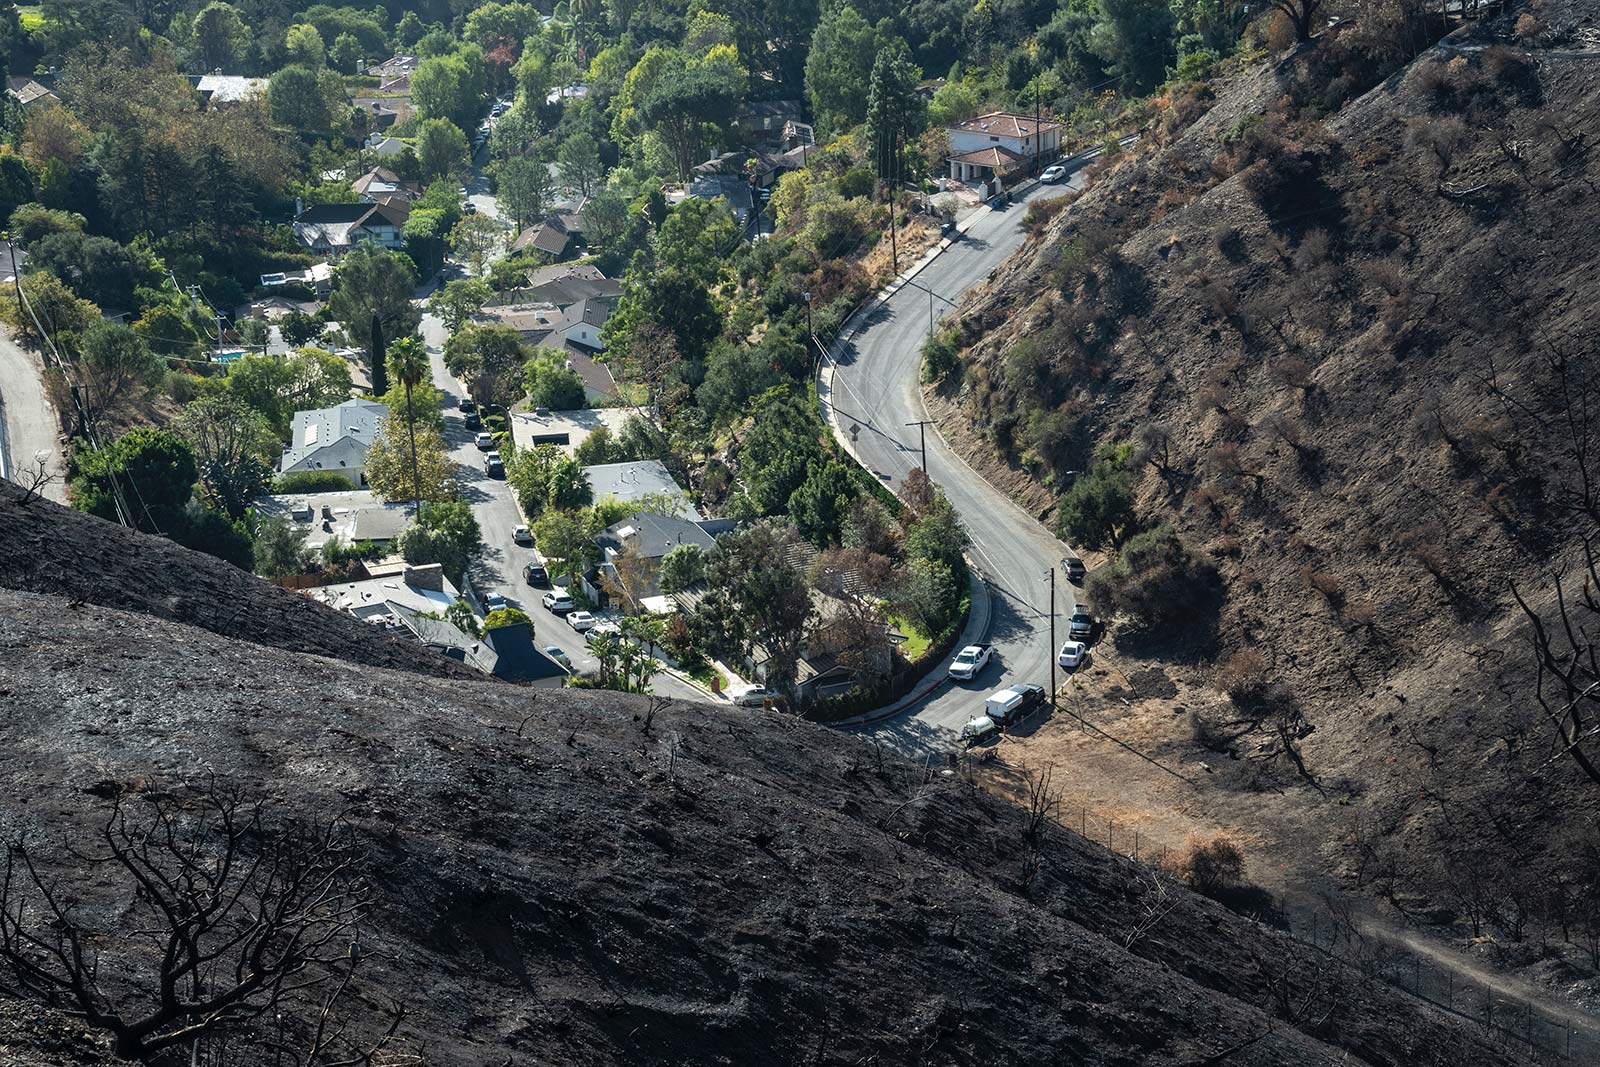 View down into neighborhood from the perspective of a burned hillside.